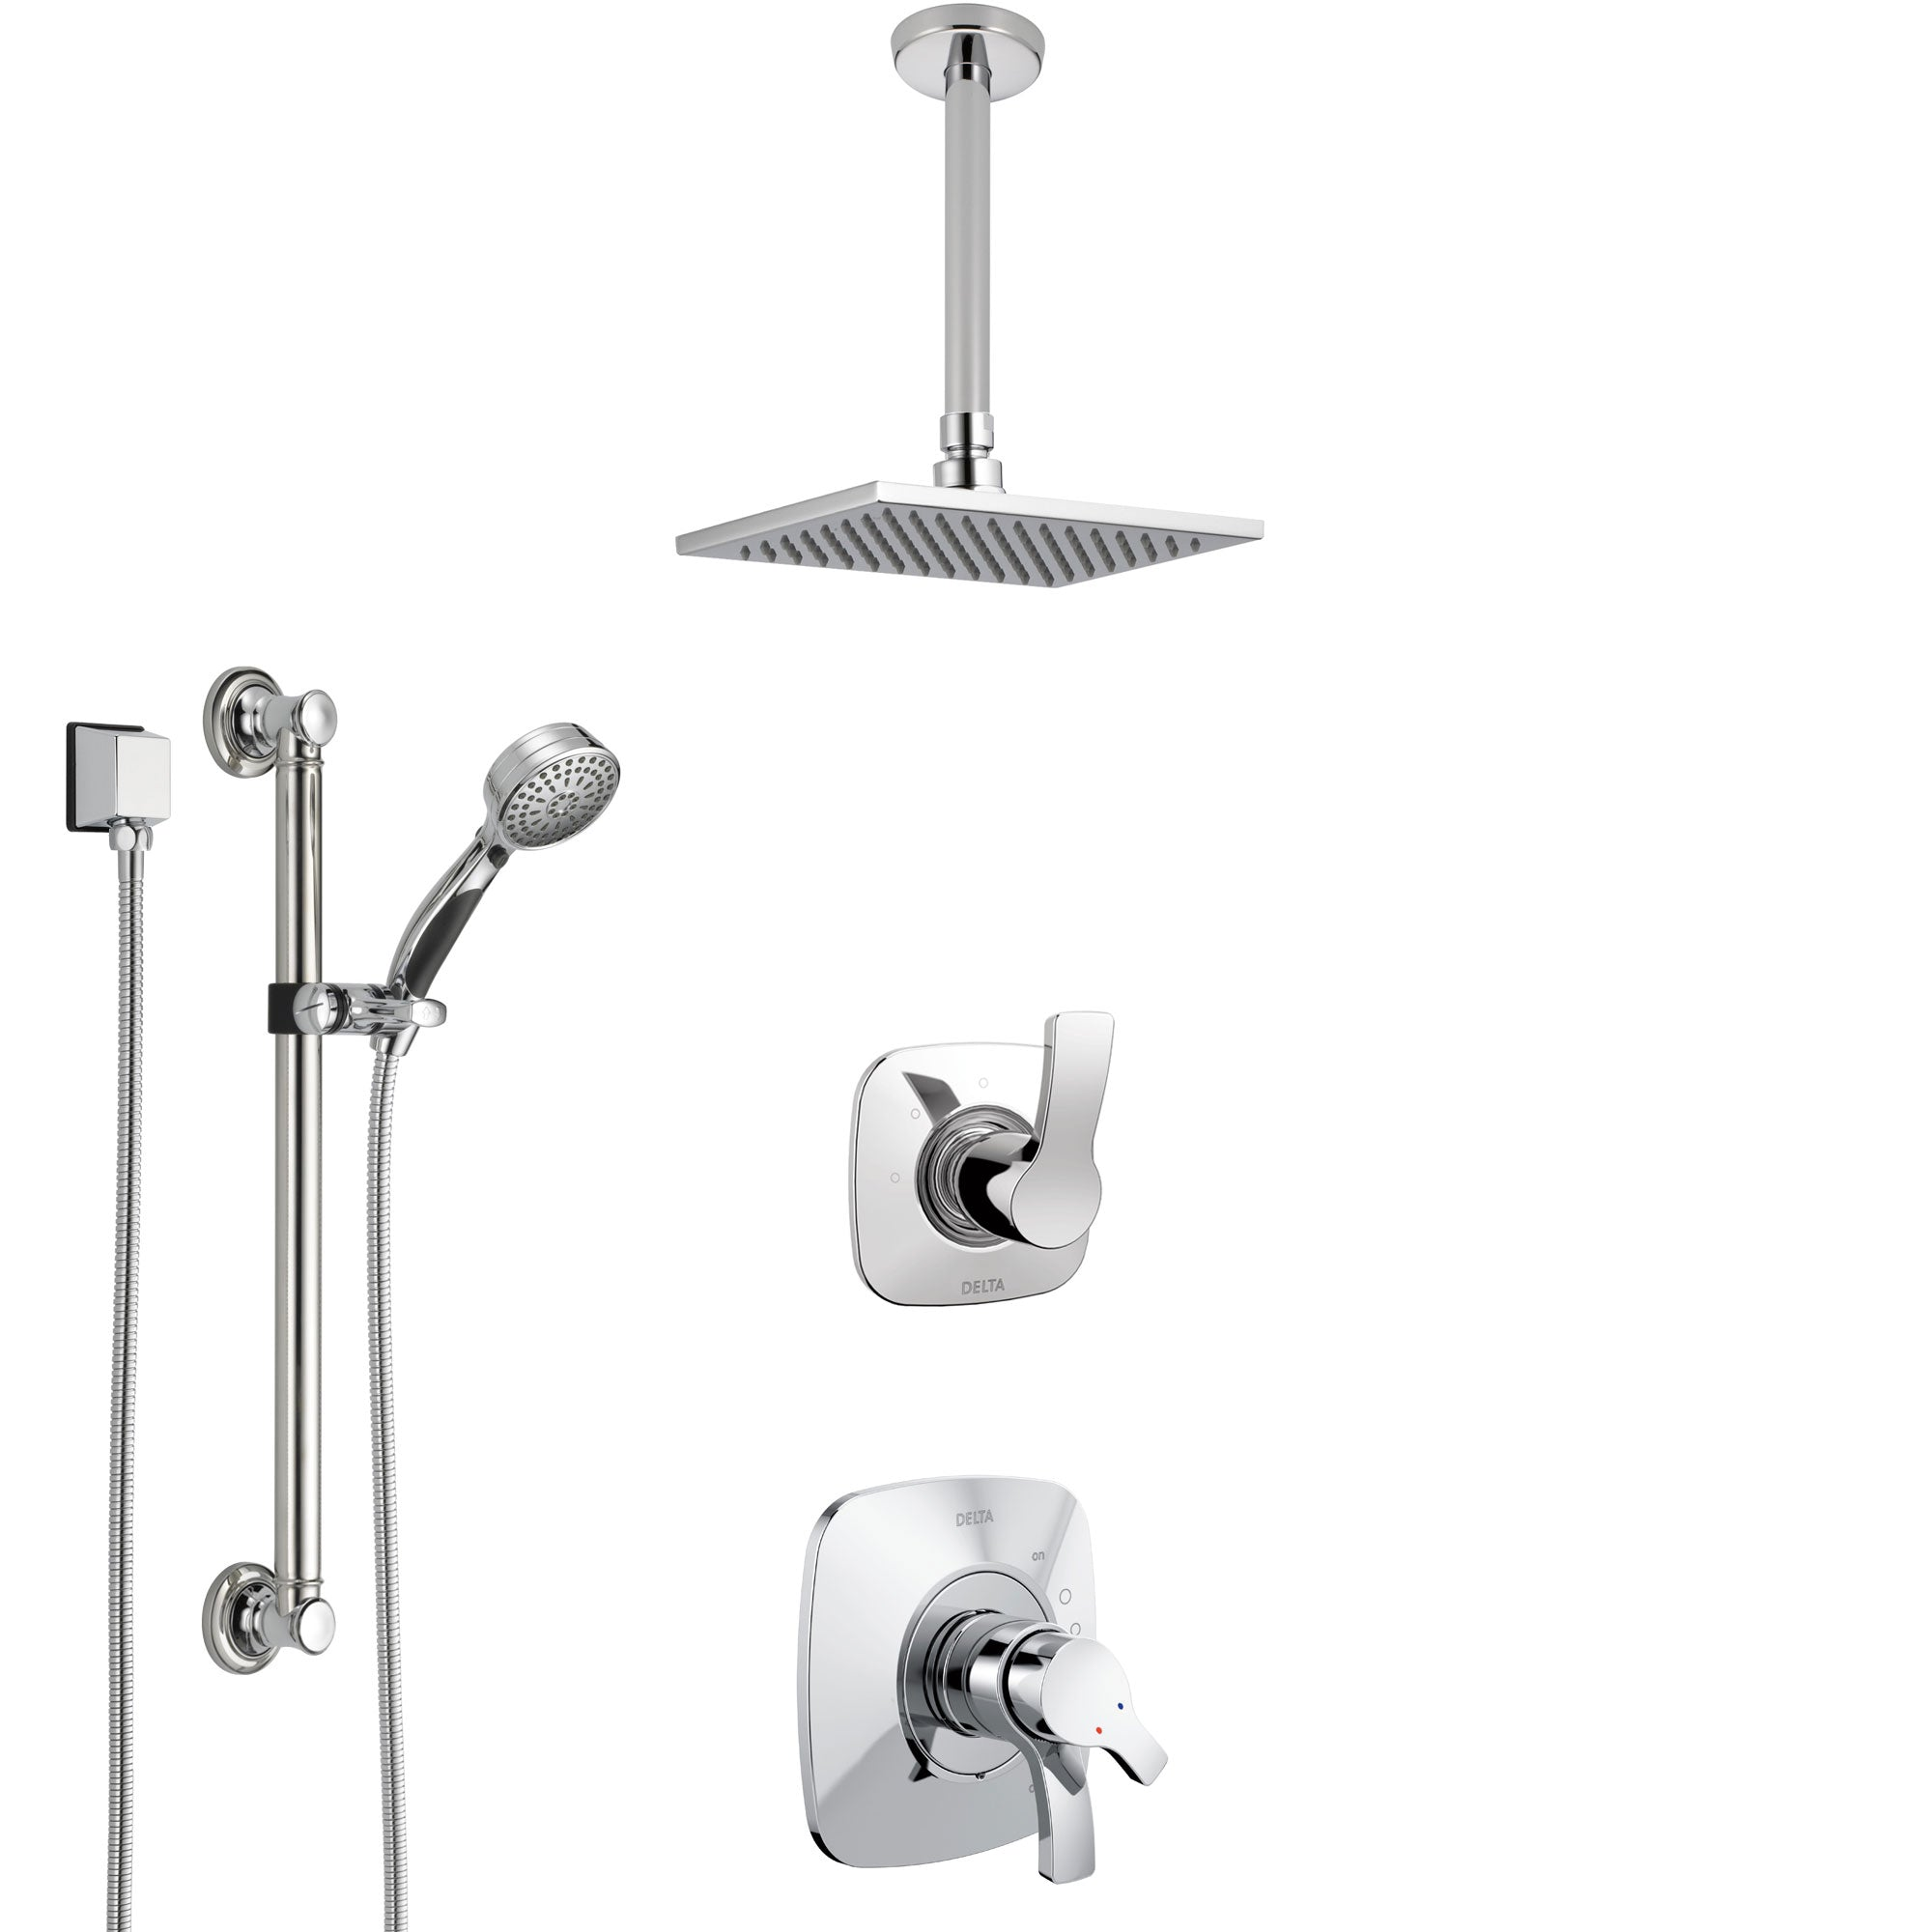 Delta Tesla Chrome Finish Shower System with Dual Control Handle, 3-Setting Diverter, Ceiling Mount Showerhead, and Hand Shower with Grab Bar SS17521